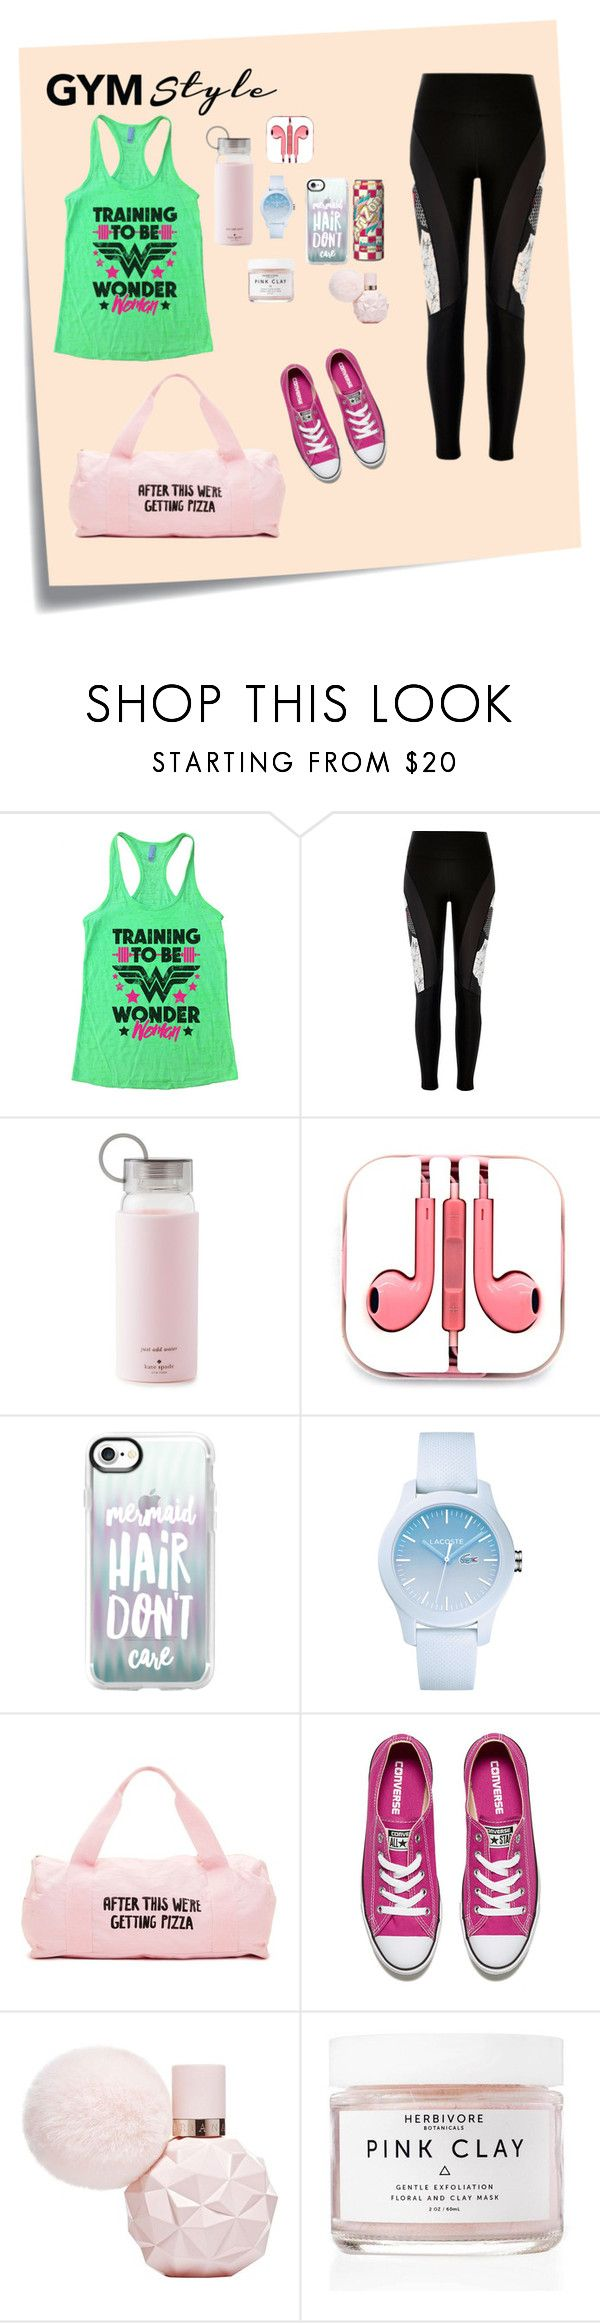 """Gym style"" by pinkash-1 ❤ liked on Polyvore featuring Post-It, River Island, Kate Spade, PhunkeeTree, Casetify, Lacoste, ban.do, Converse and Herbivore"